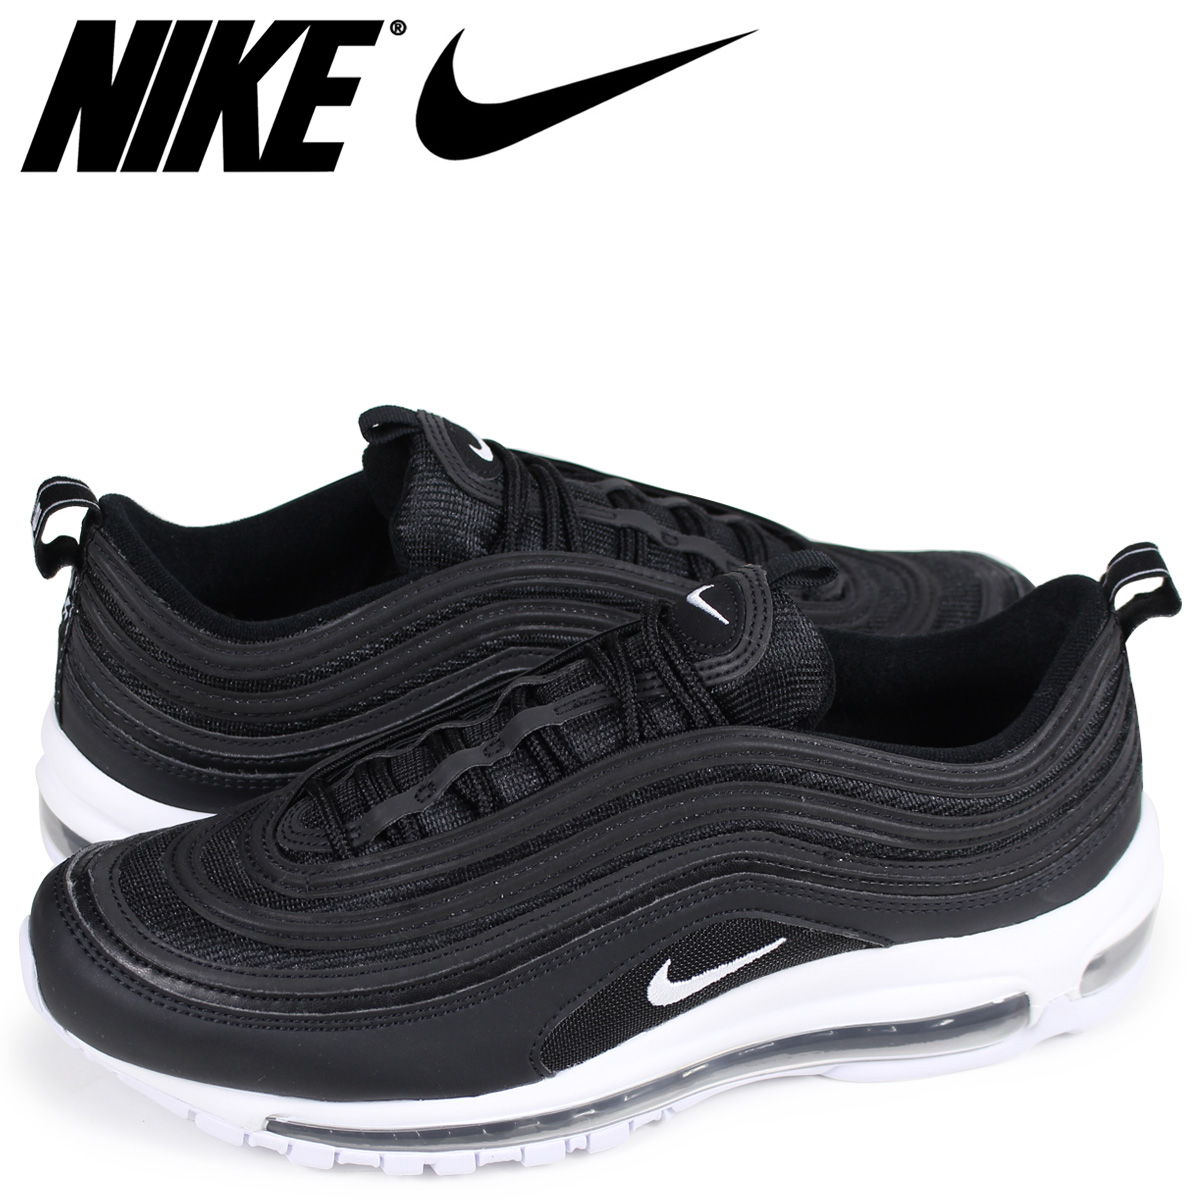 brand new ac790 3050f Nike NIKE Air Max 97 sneakers men AIR MAX 97 921,826-001 black load  planned Shinnyu load in reservation product 413 containing